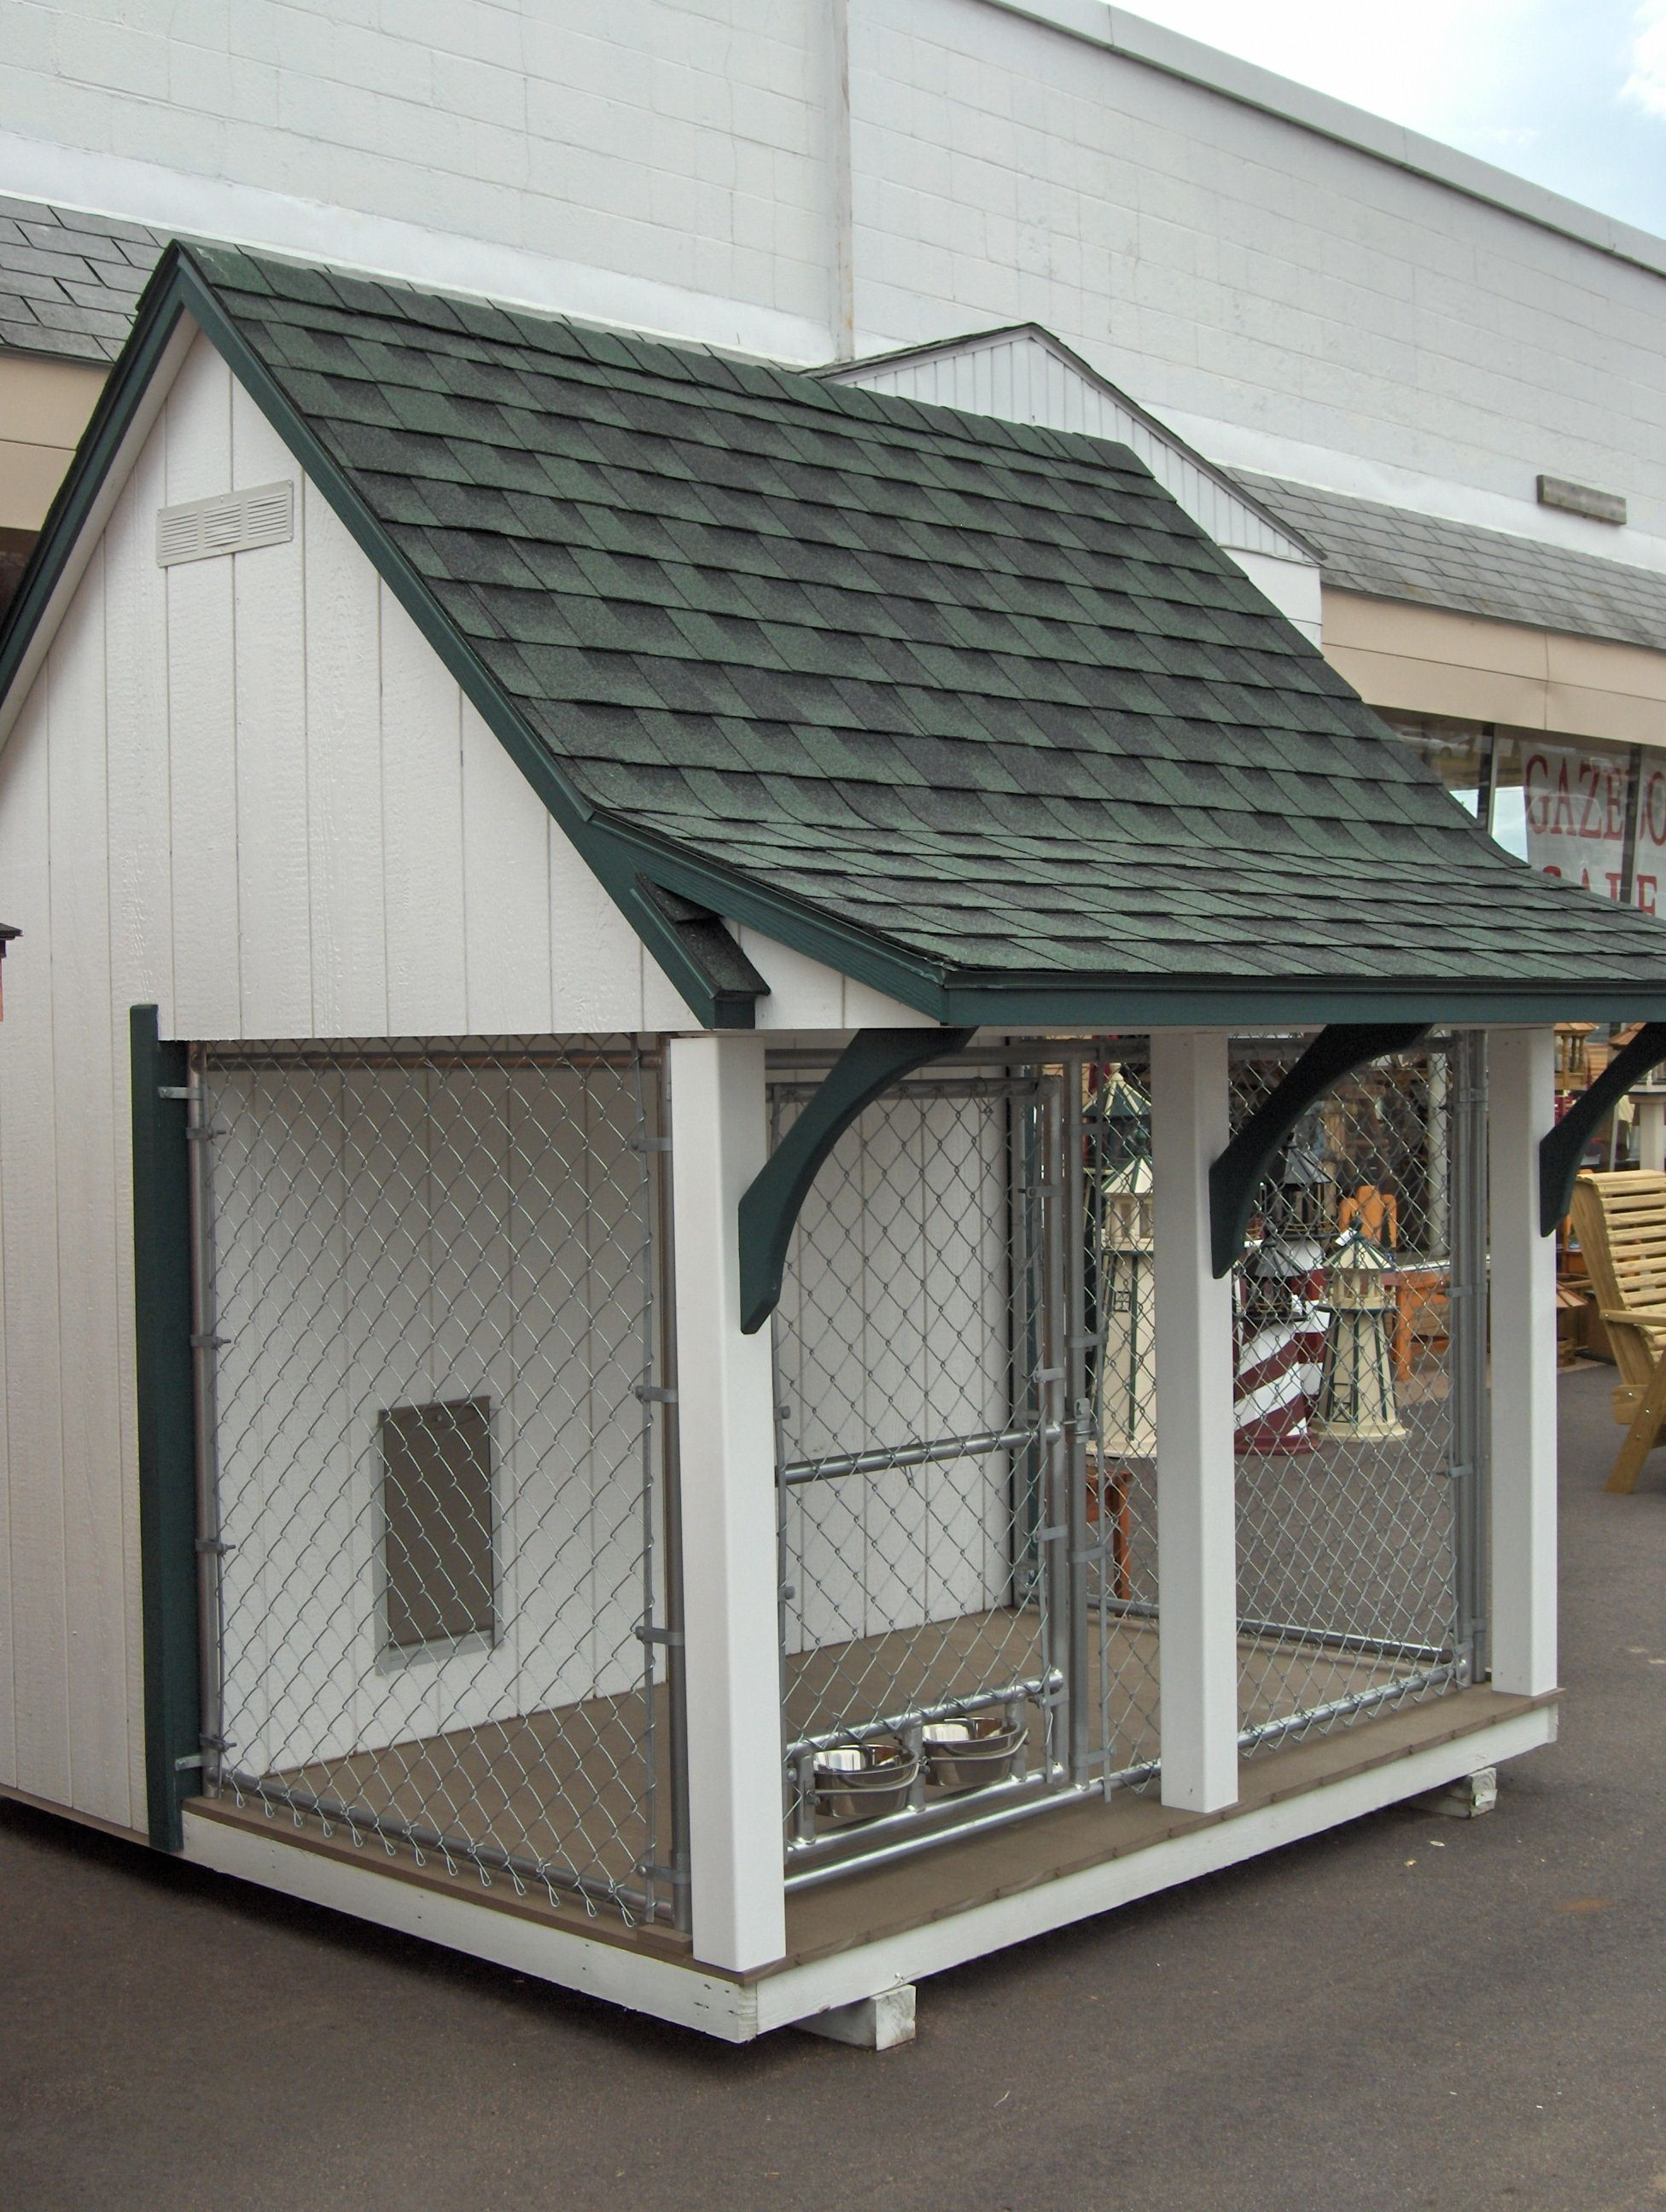 indoor dog kennels | Compare Prices on Dog Kennel Sales - Buy Low Price Dog Kennel Sales